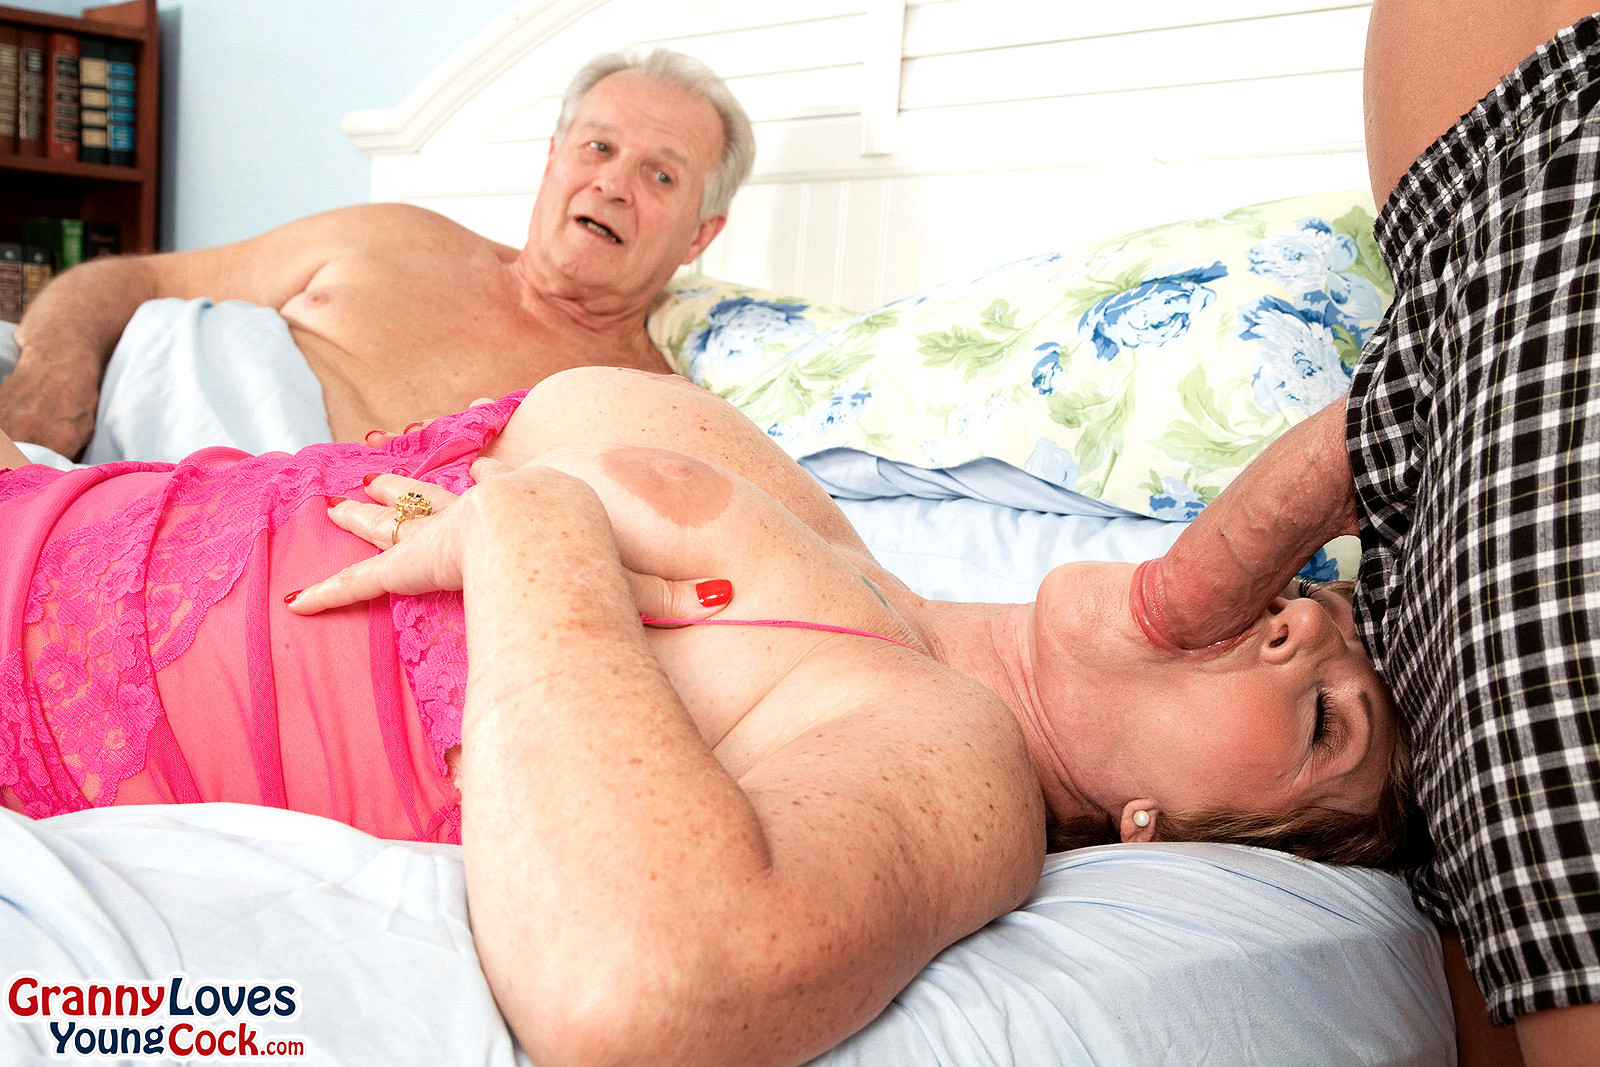 Nasty step mom alexis fawx riding cock hot touching dad039s friend 2